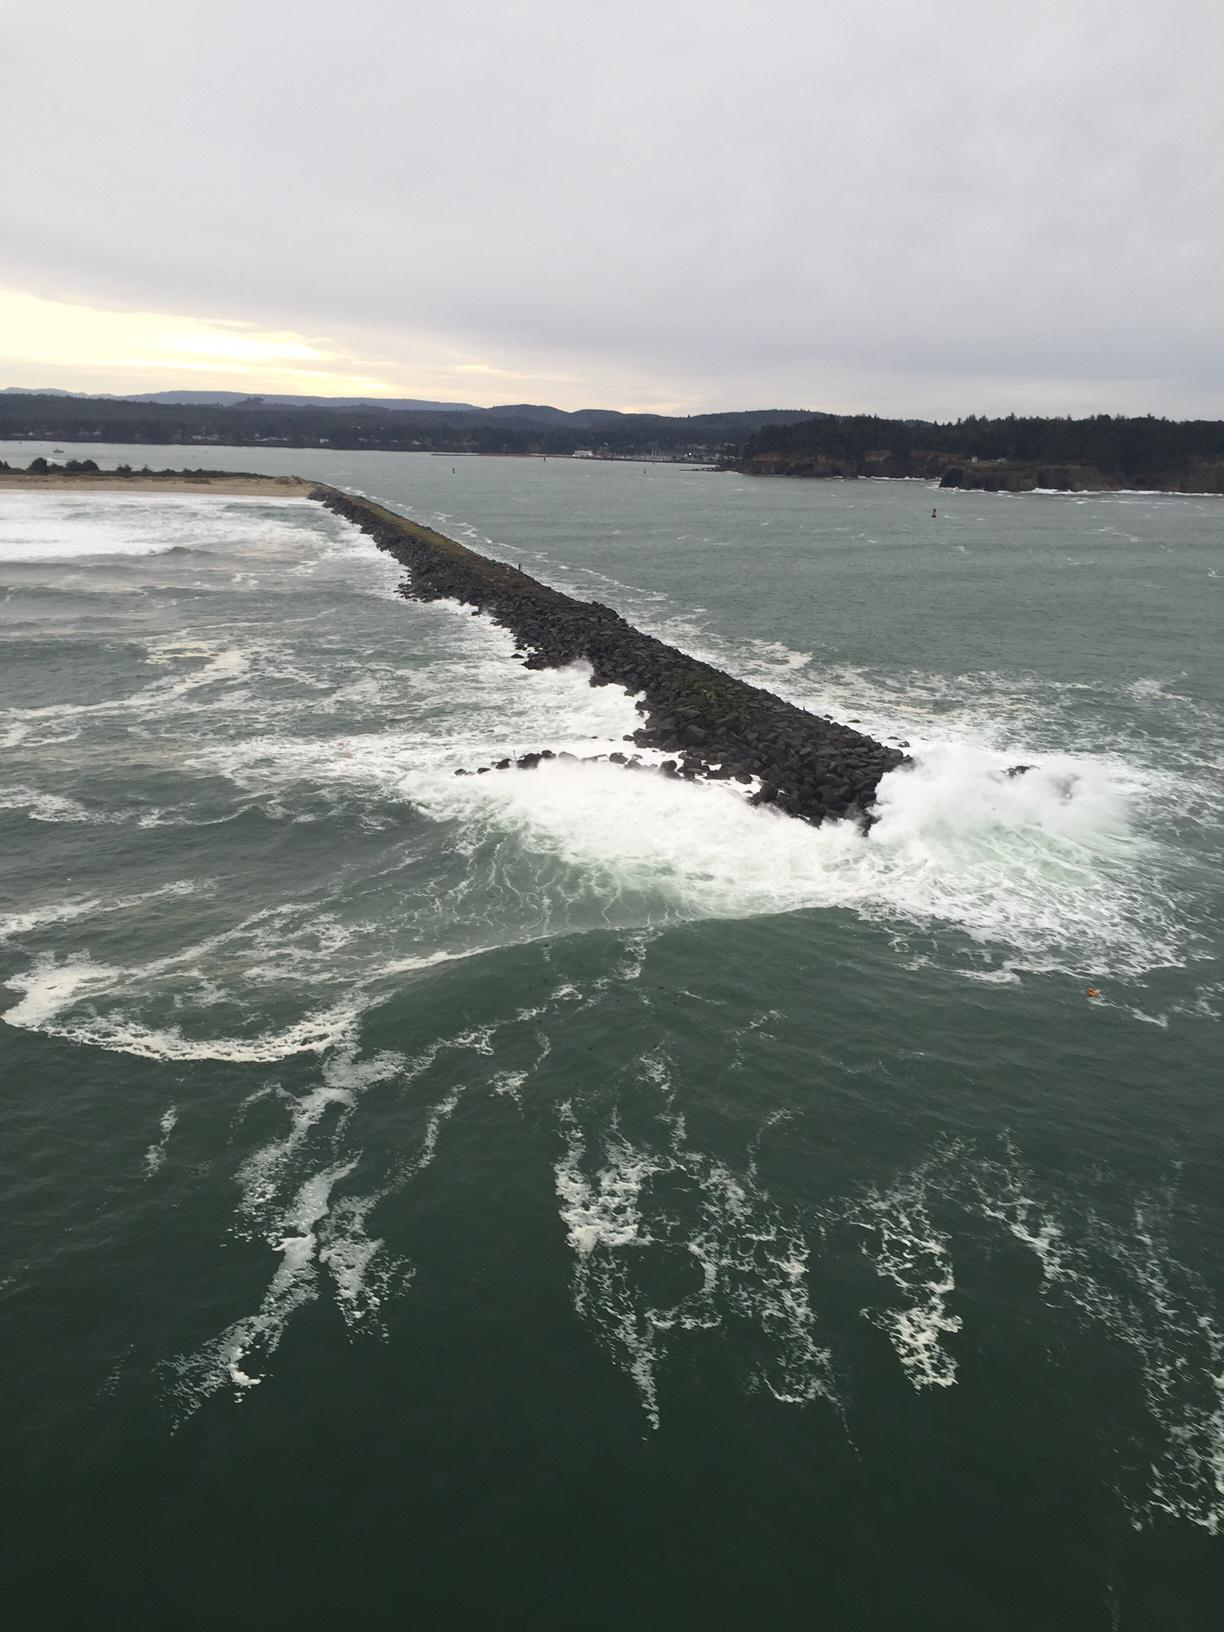 The North Jetty near Coos Bay, Ore., is pictured after crab fishing vessel Eagle III broke up, Jan. 20, 2016. The debris field congregated along the north side of the North Jetty, with some debris migrating with the tide across the bar and into the river. (U.S. Coast Guard photo courtesy Air Station North Bend)